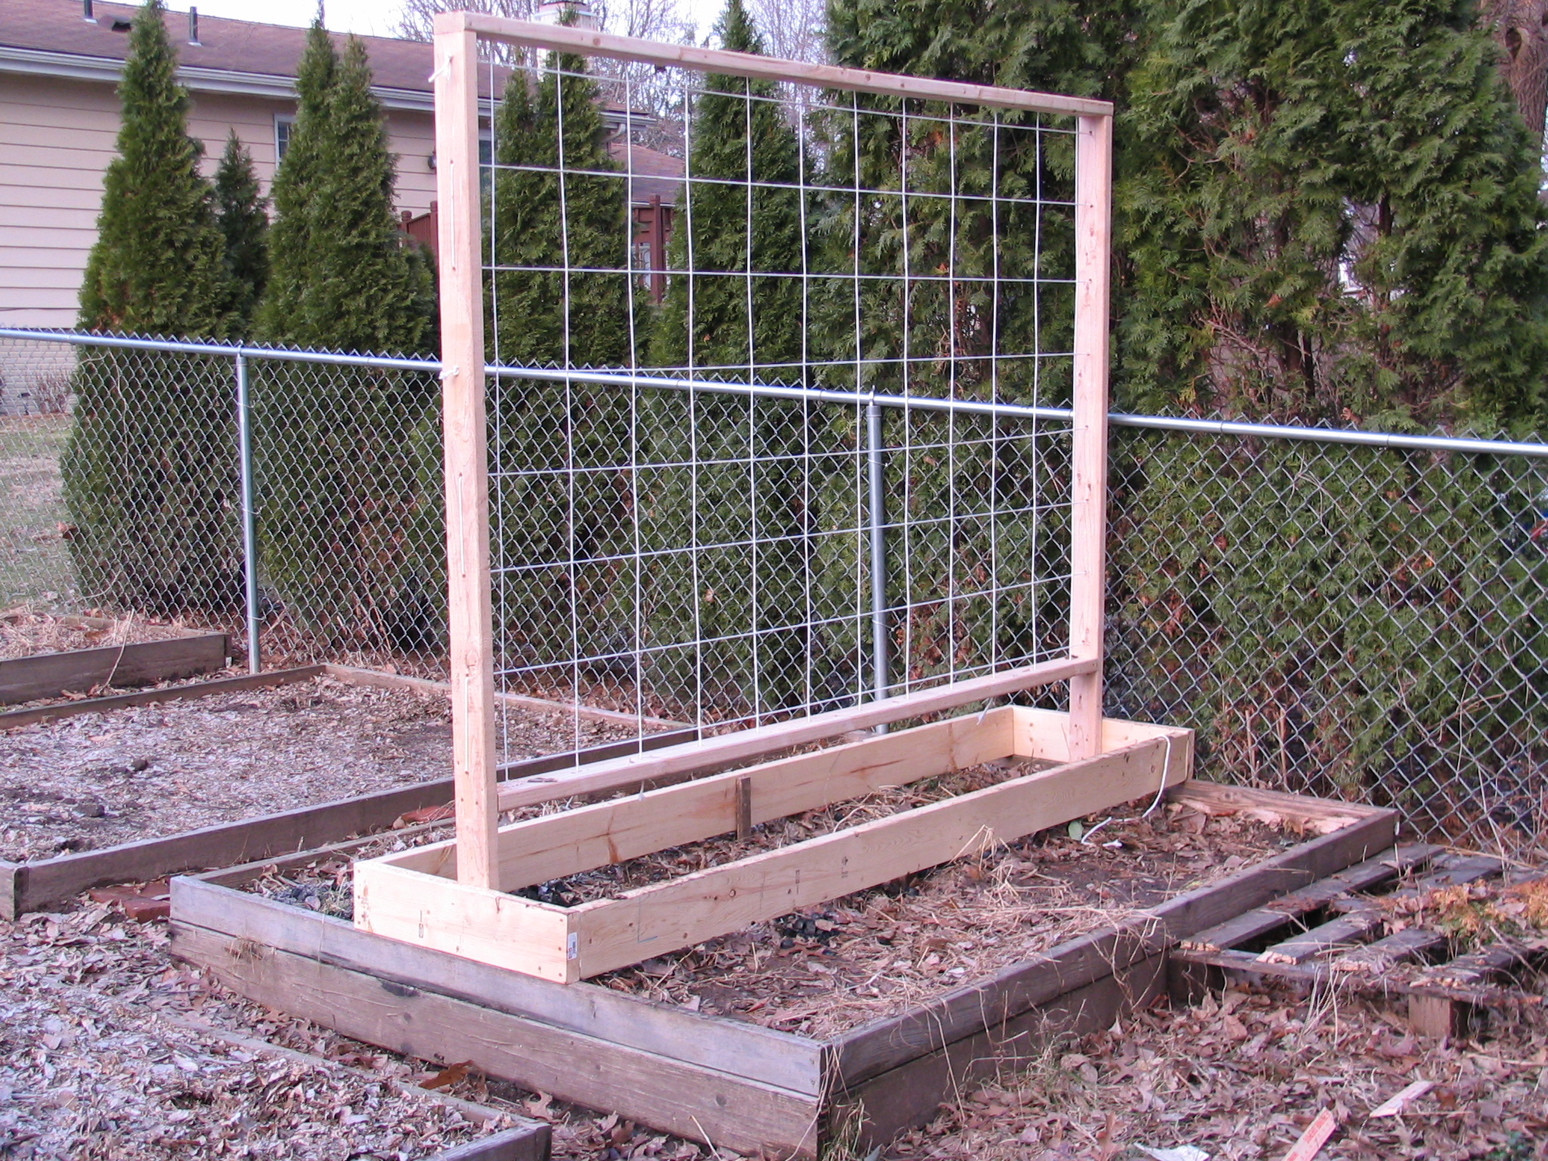 Best ideas about DIY Trellis Plans . Save or Pin 2011 Garden Trellis Design for my Raised Beds Now.